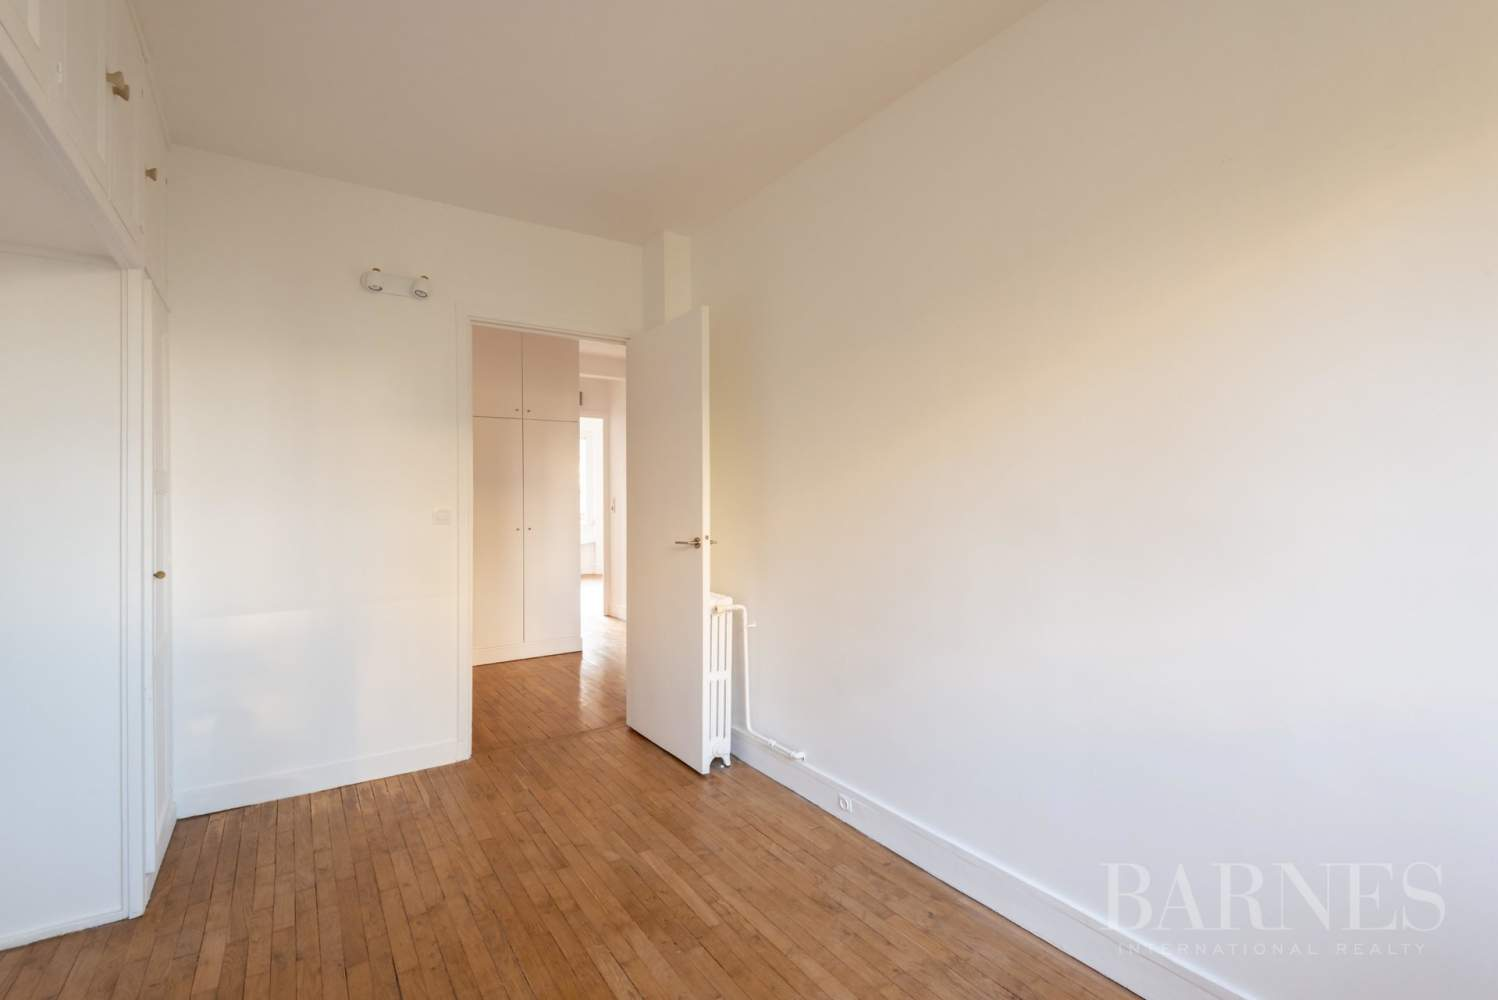 NEUILLY CHEZY APPARTEMENT 3 CHAMBRES VIDE PARKING BALCON picture 6